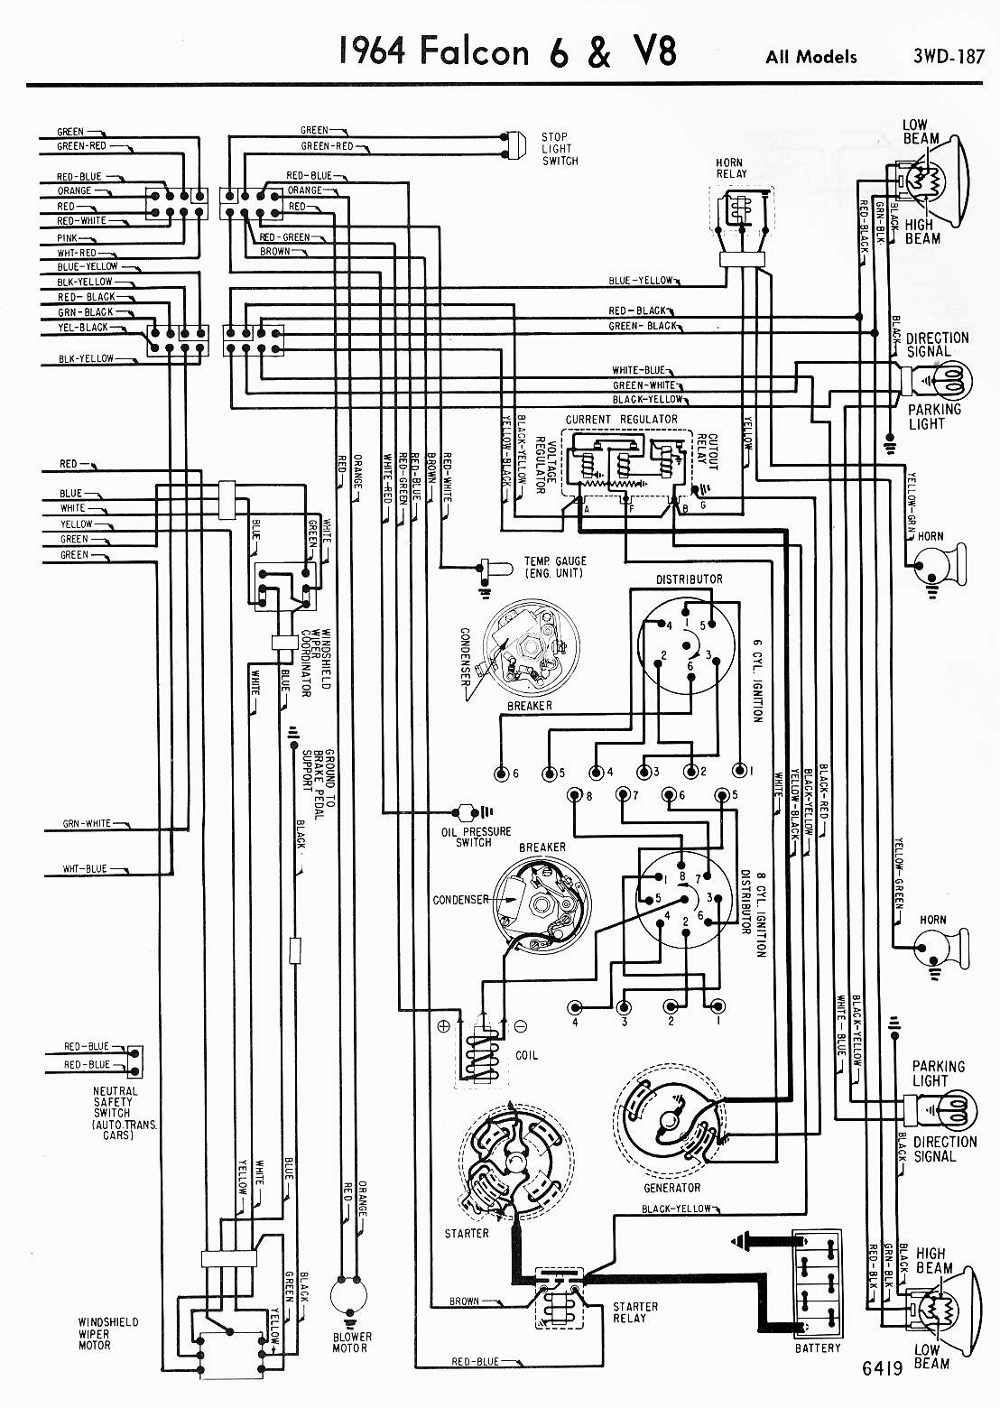 1964 ford falcon wiring diagram wiring diagram database1964 ford falcon wiring diagram [ 1000 x 1408 Pixel ]